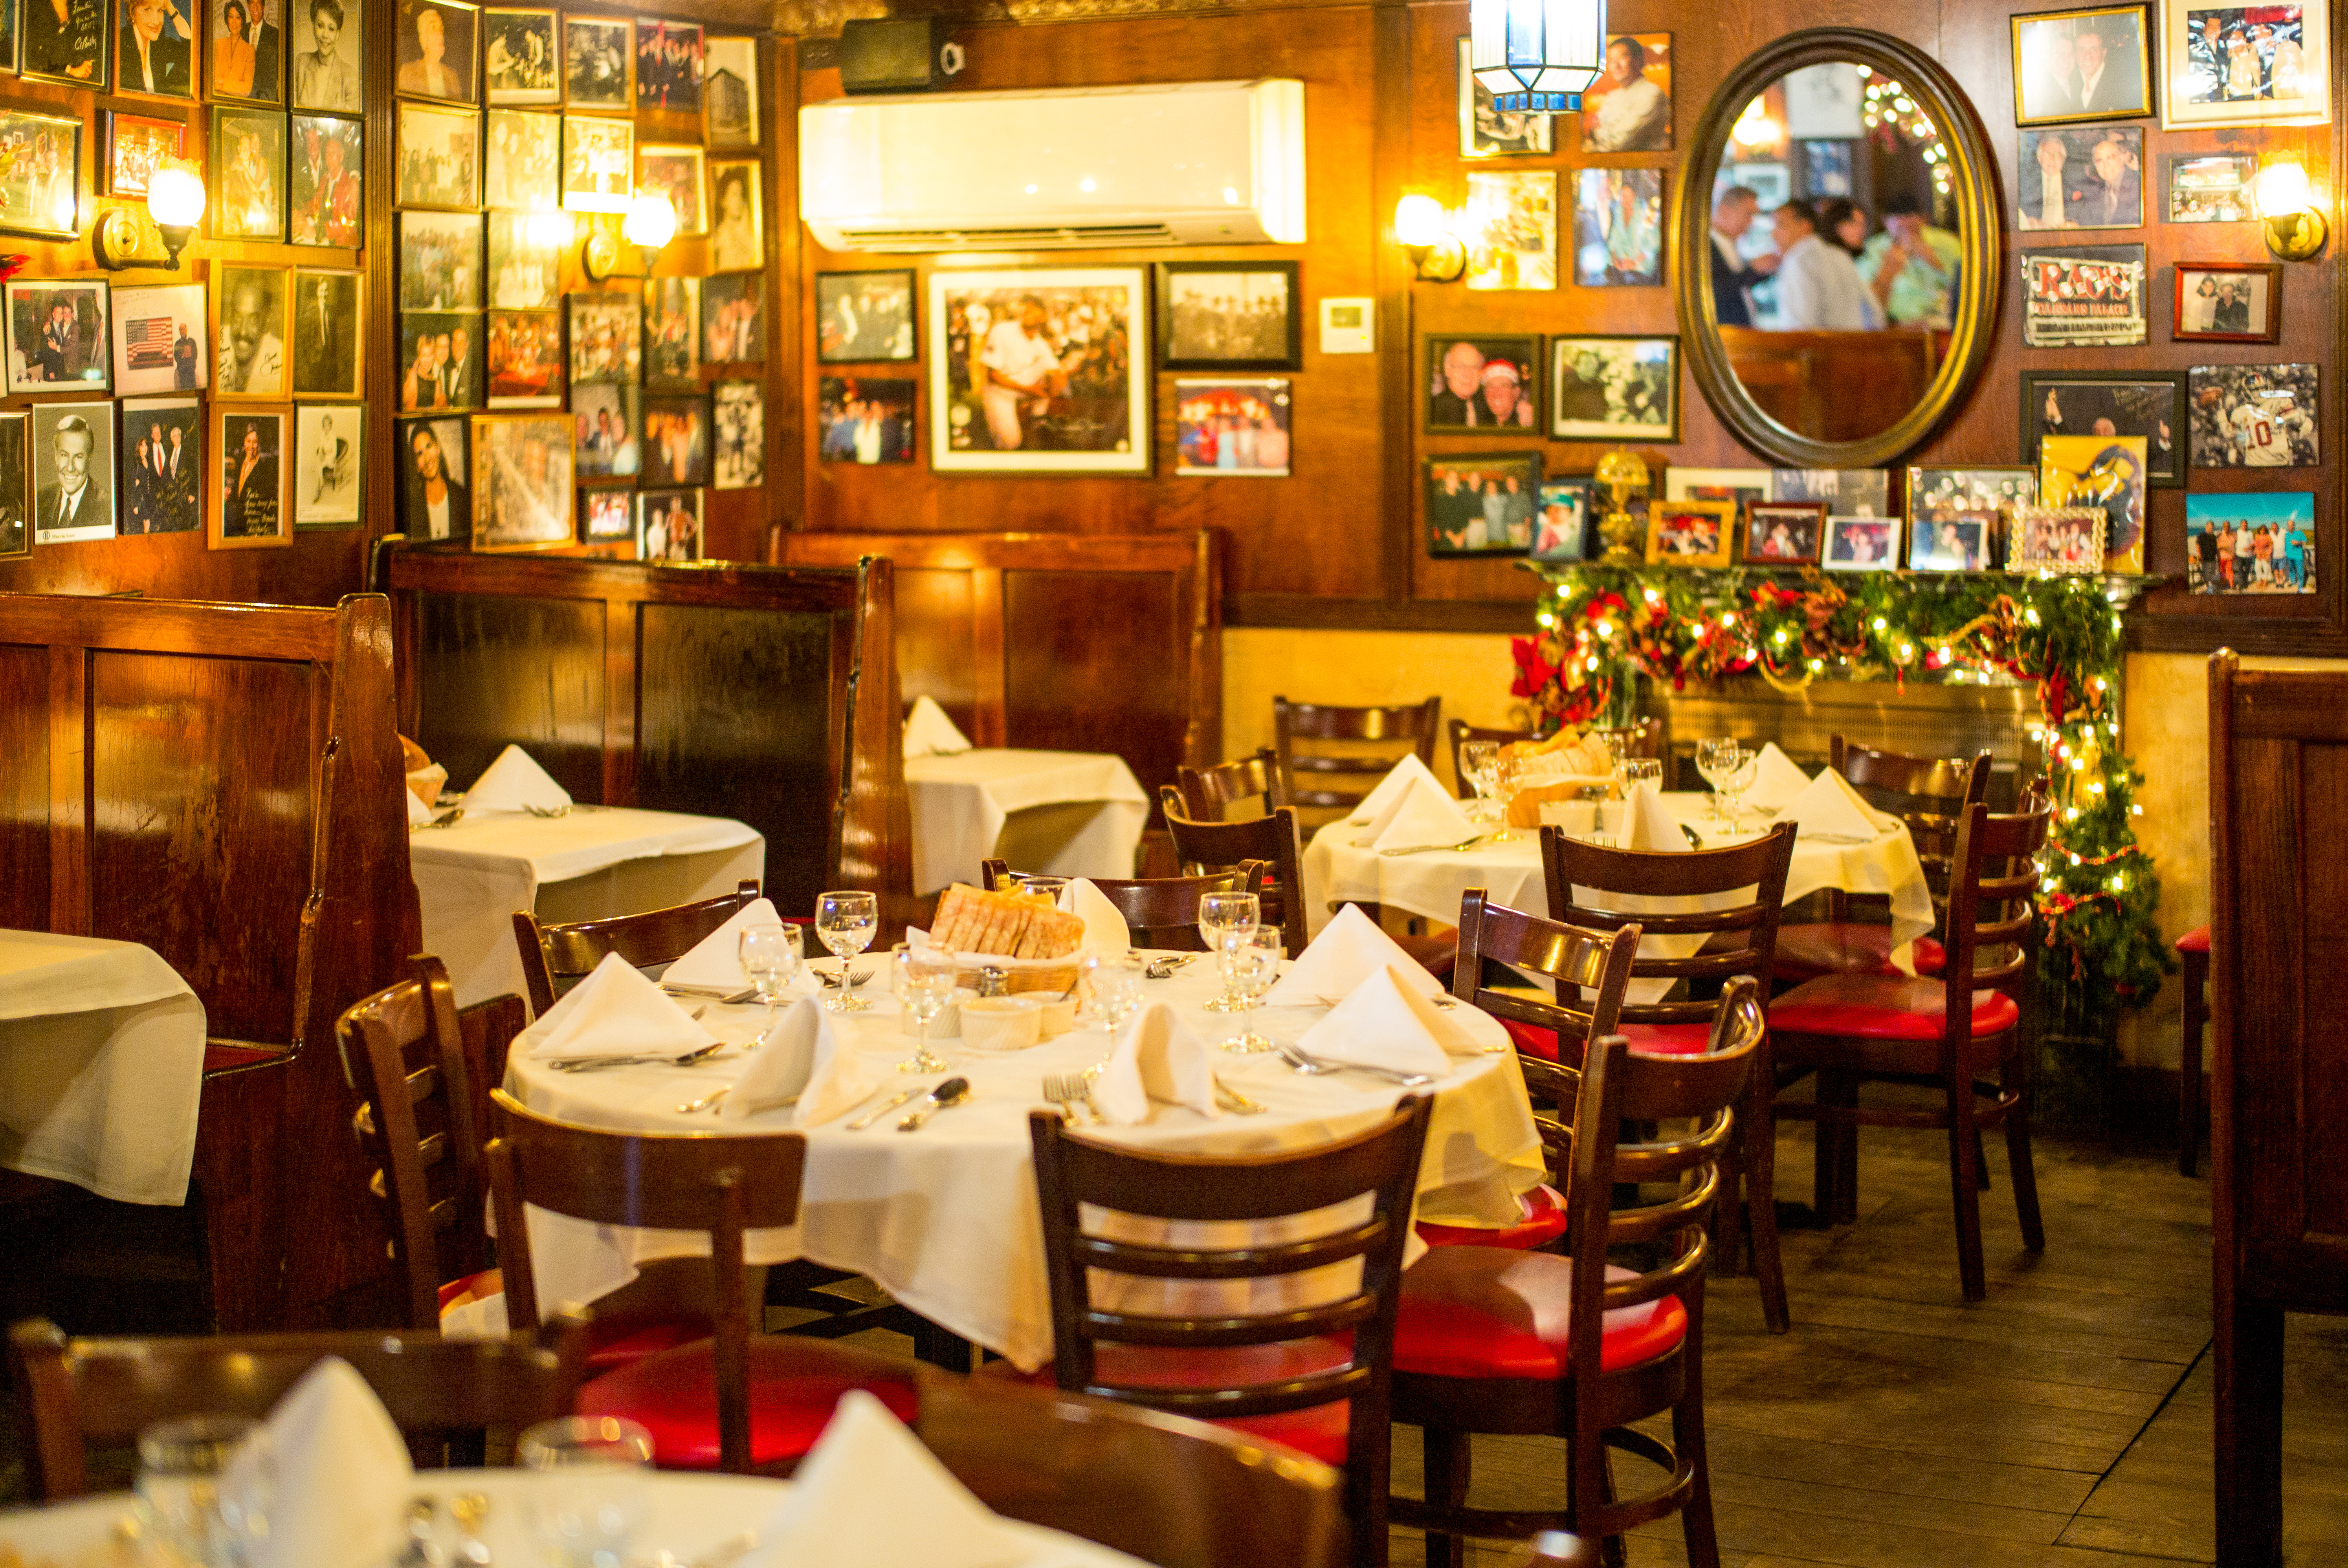 The dining room of a restaurant with white table cloth lined tables, black chairs, and a plethora of photos on the wall